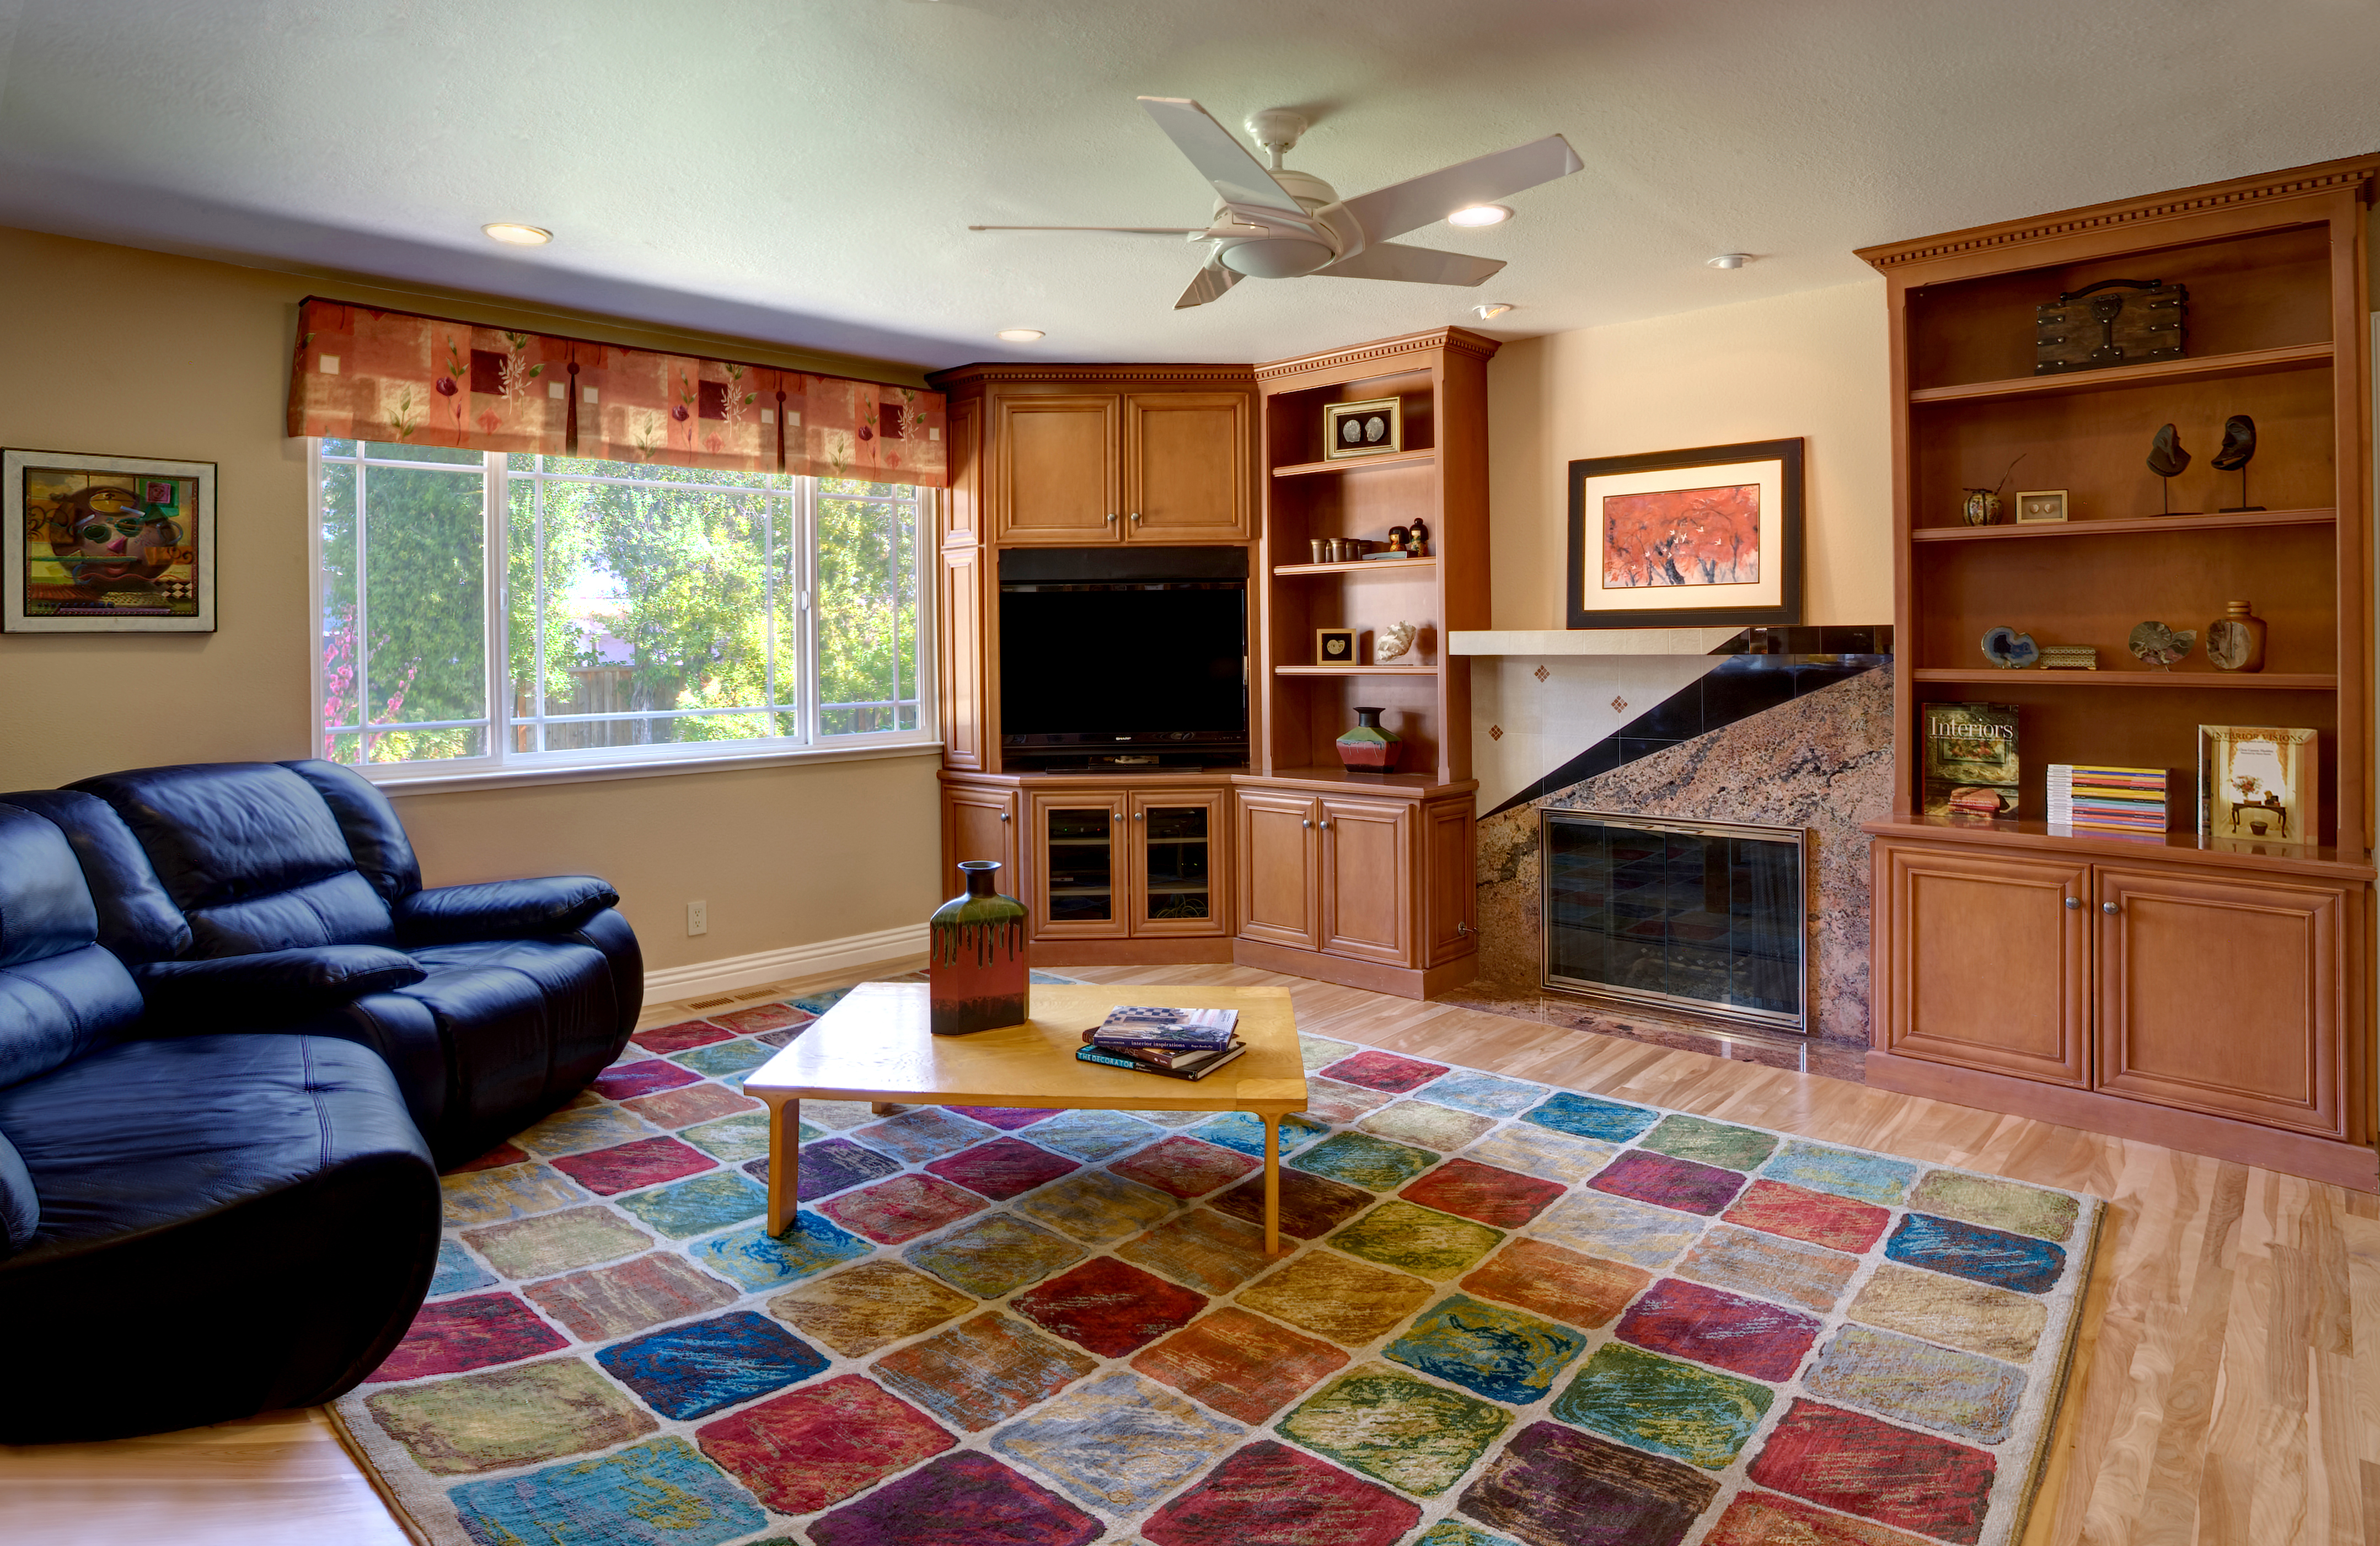 Remodeled Saratoga family room with new cabinetry, fireplace mantle, drapery and flooring